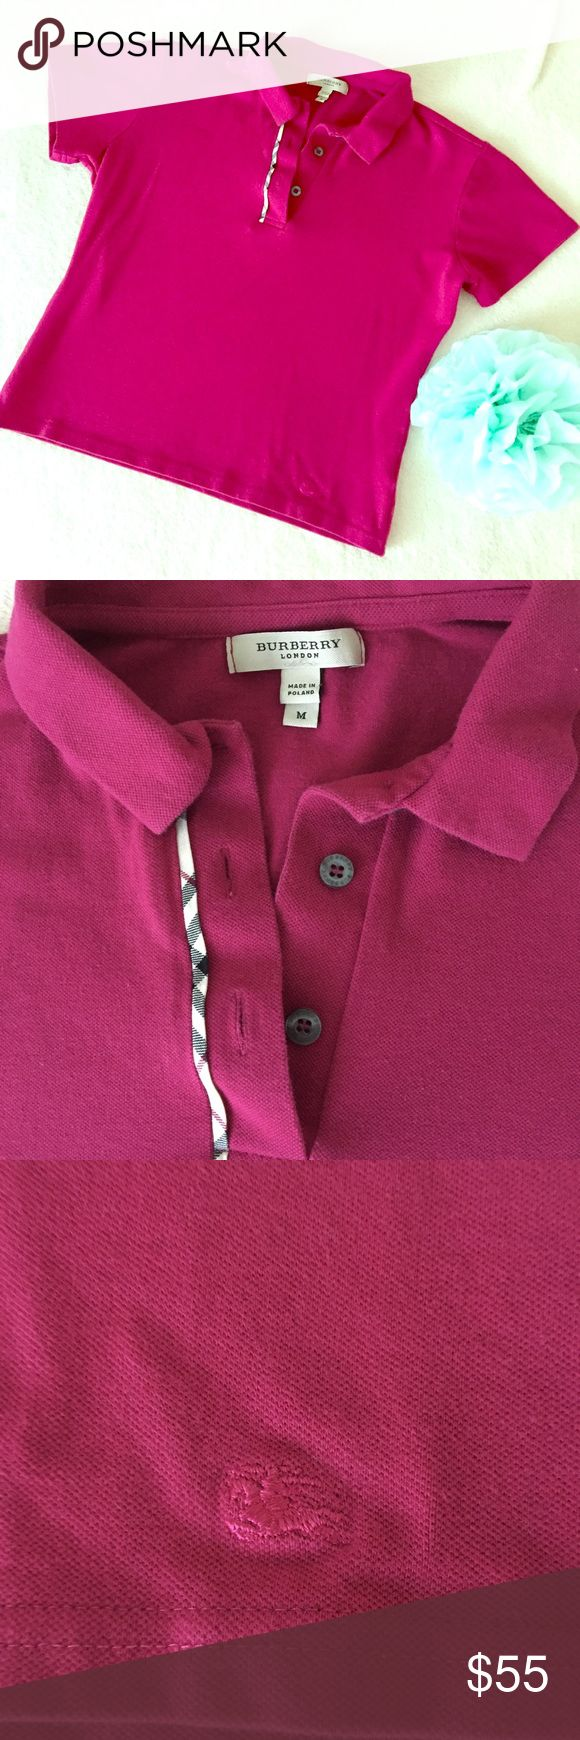 Burberry Polo Shirt Burberry polo shirt. Color between magenta and bright pink. Medium size but runs small. Preloved in very good condition. I love it but it doesn't fit me anymore. Burberry pattern on front as shown on the second photo. Stylish Top! Burberry Tops Button Down Shirts